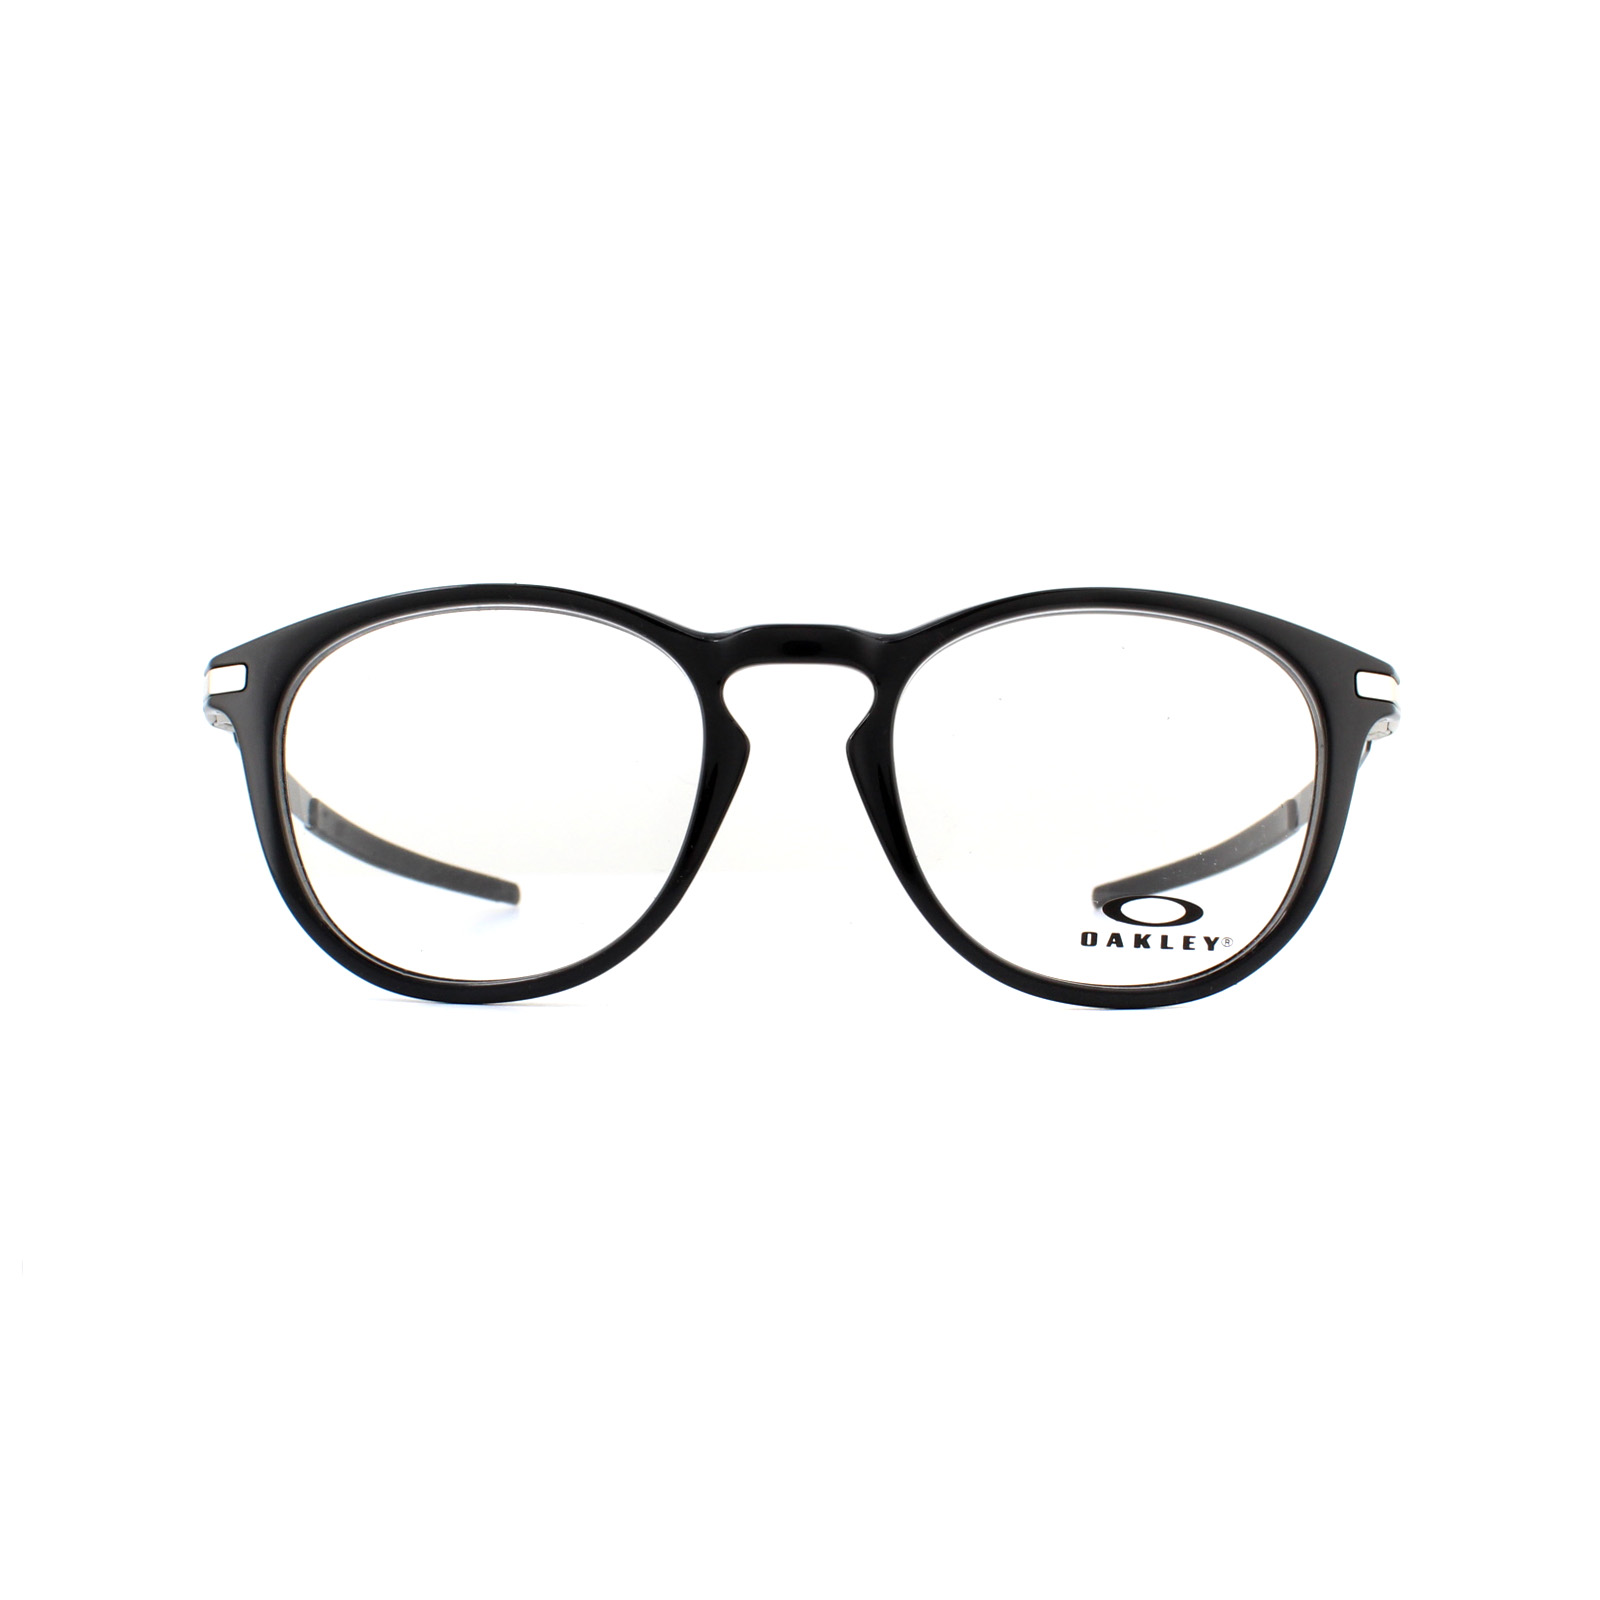 5ef6df8c78 Sentinel Oakley Glasses Frames Pitchman R OX8105-06 Polished Black 50mm